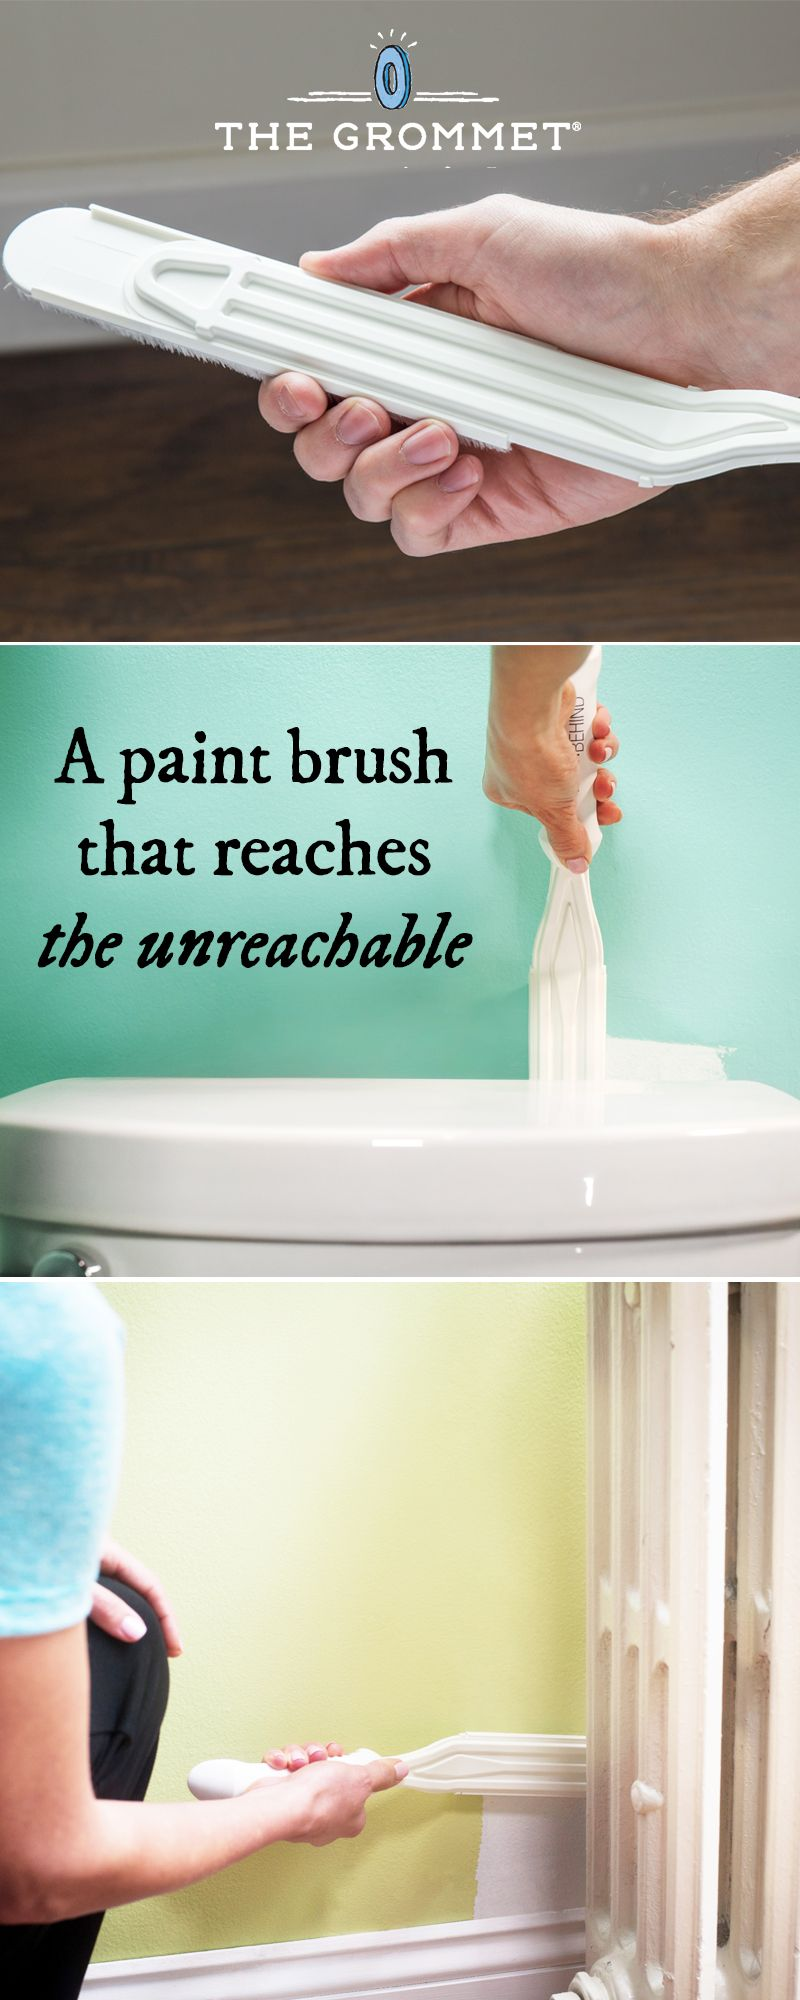 Paint Behind Tight Space Paint Brush Home Diy Pinterest Paint